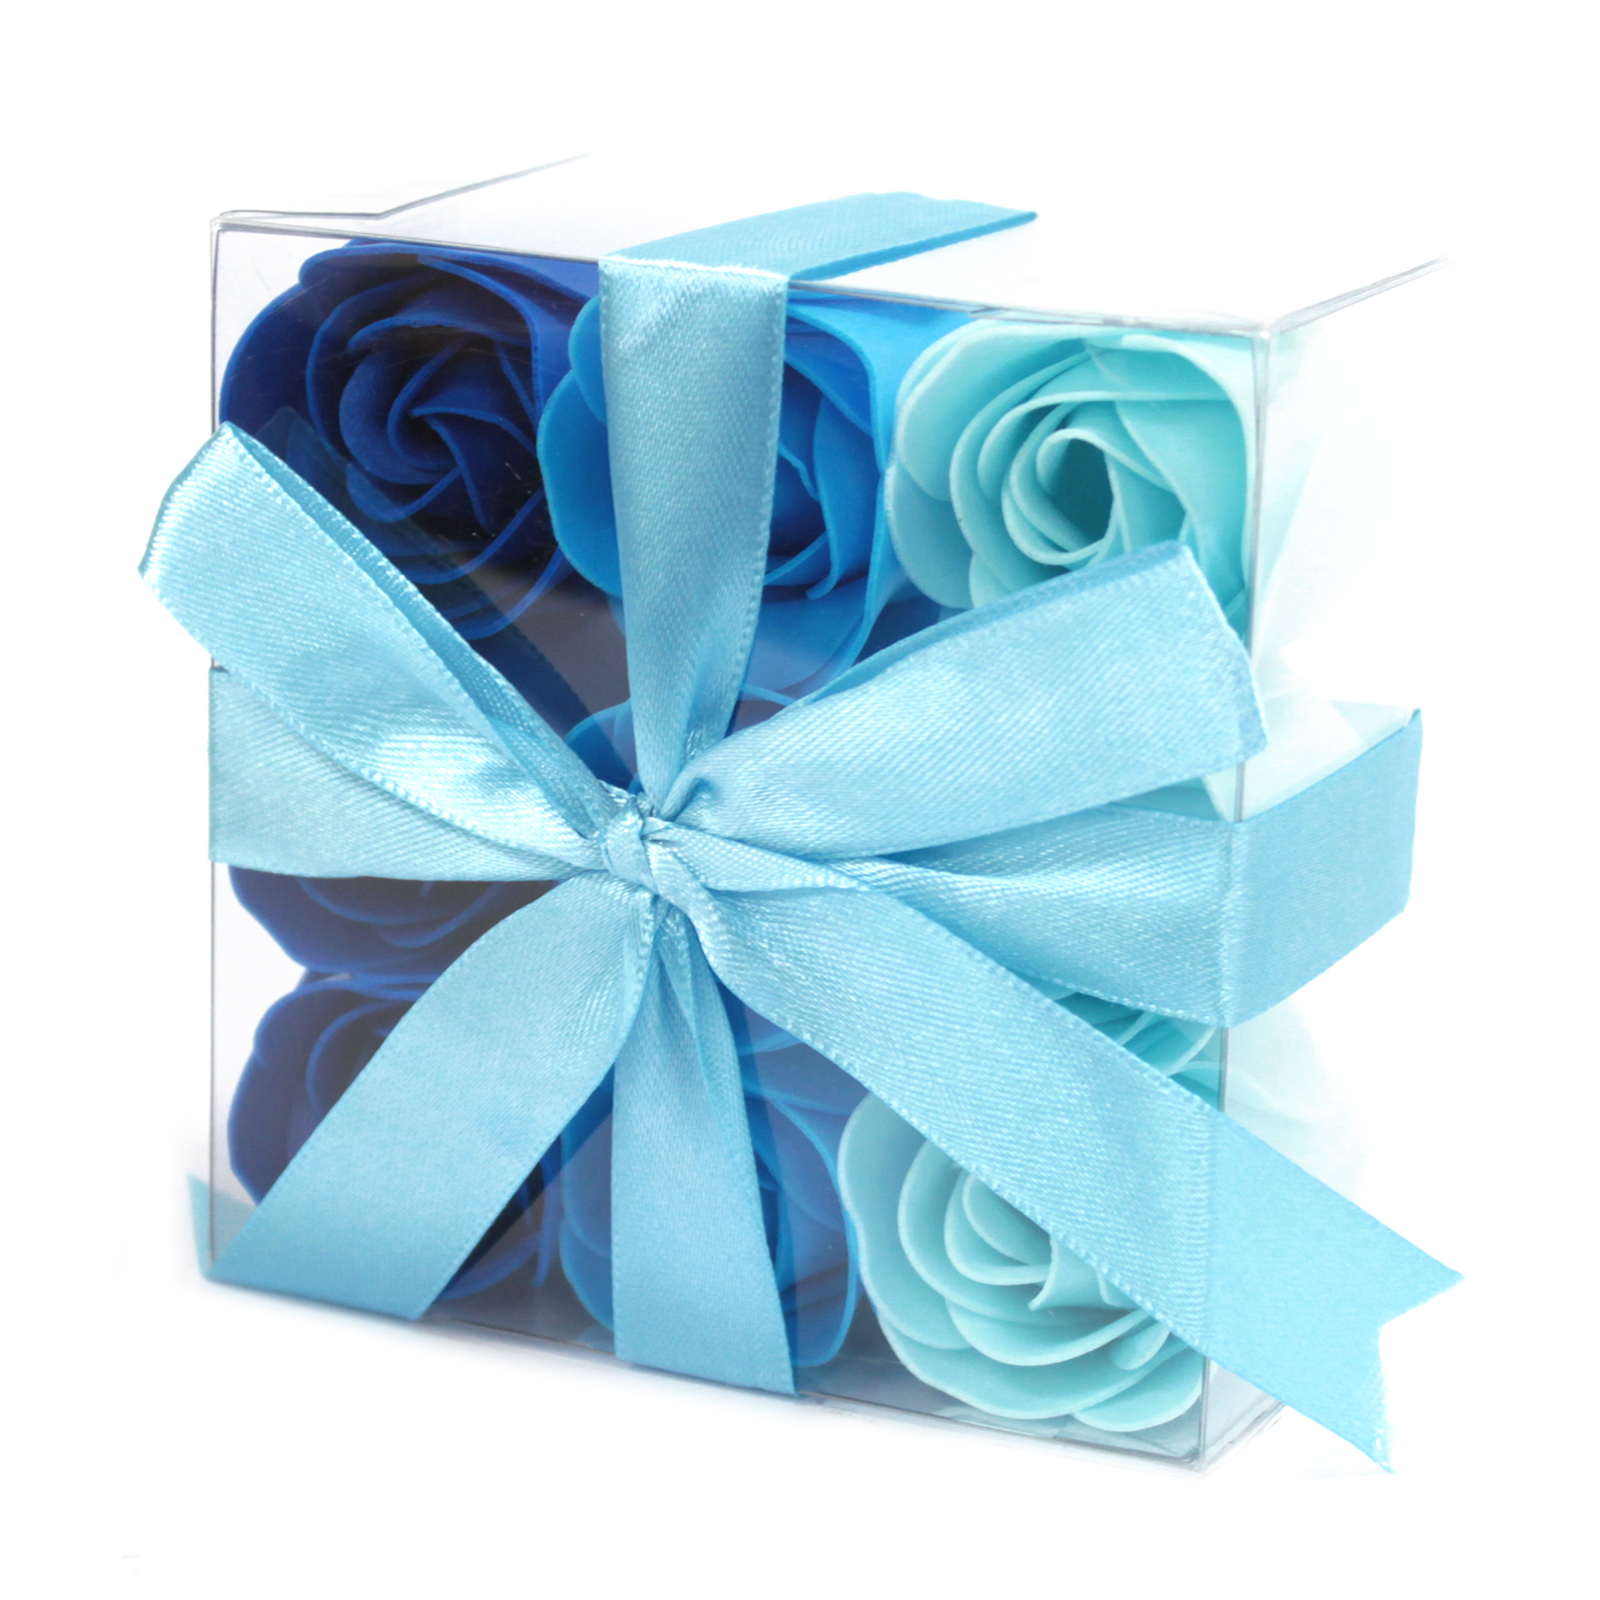 1x Set of 9 Soap Flowers - Blue Wedding Roses